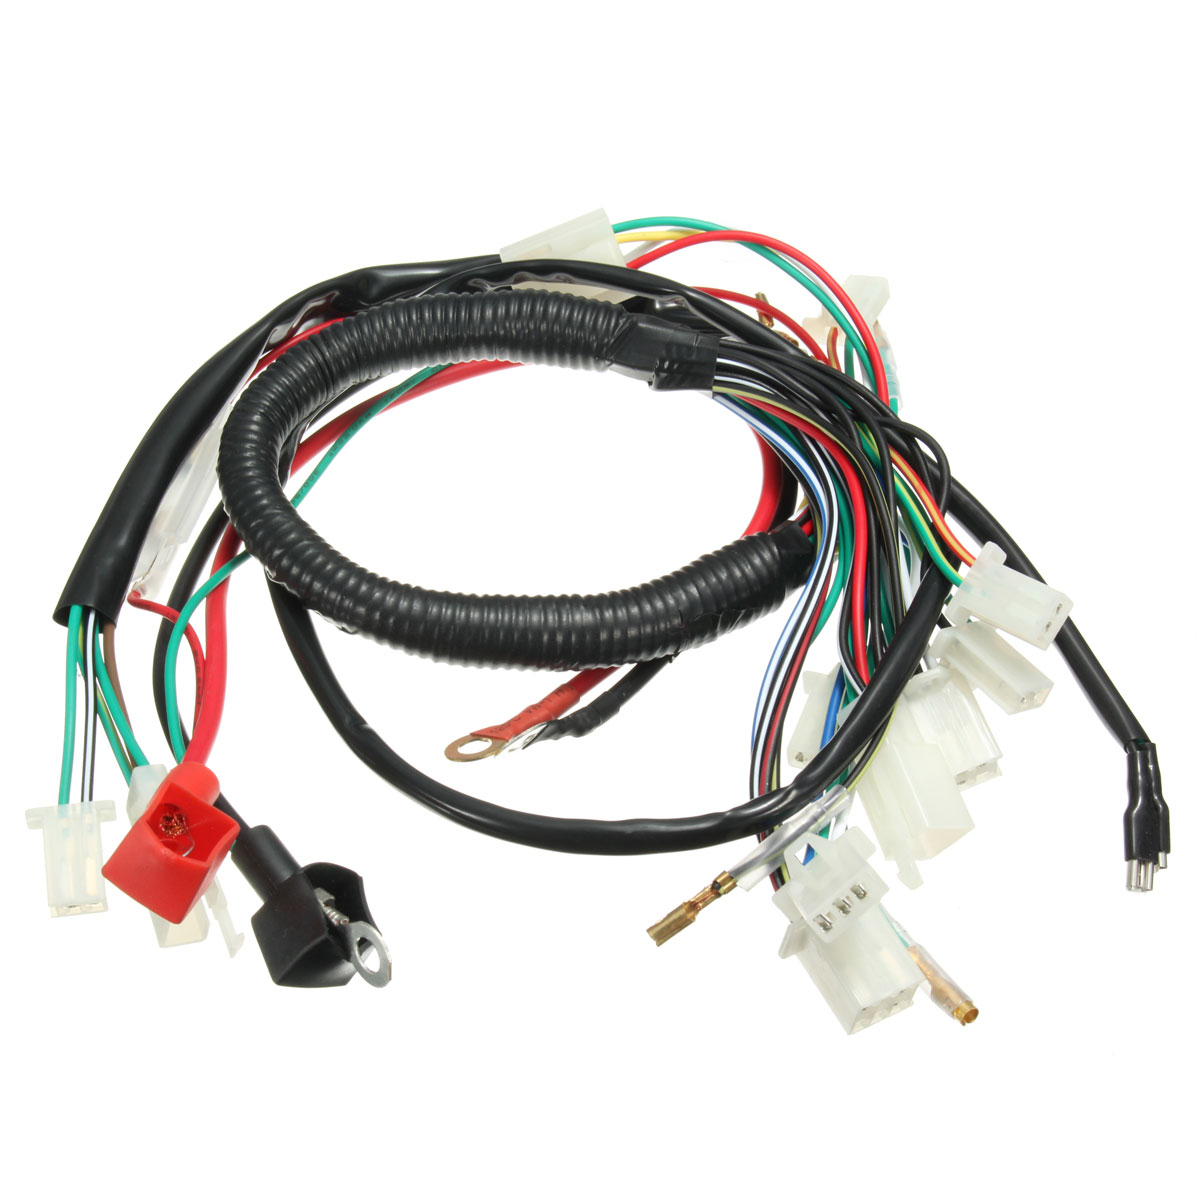 wiring harness machine electric start wiring loom harness pit bike atv quads 50cc 70cc 90cc